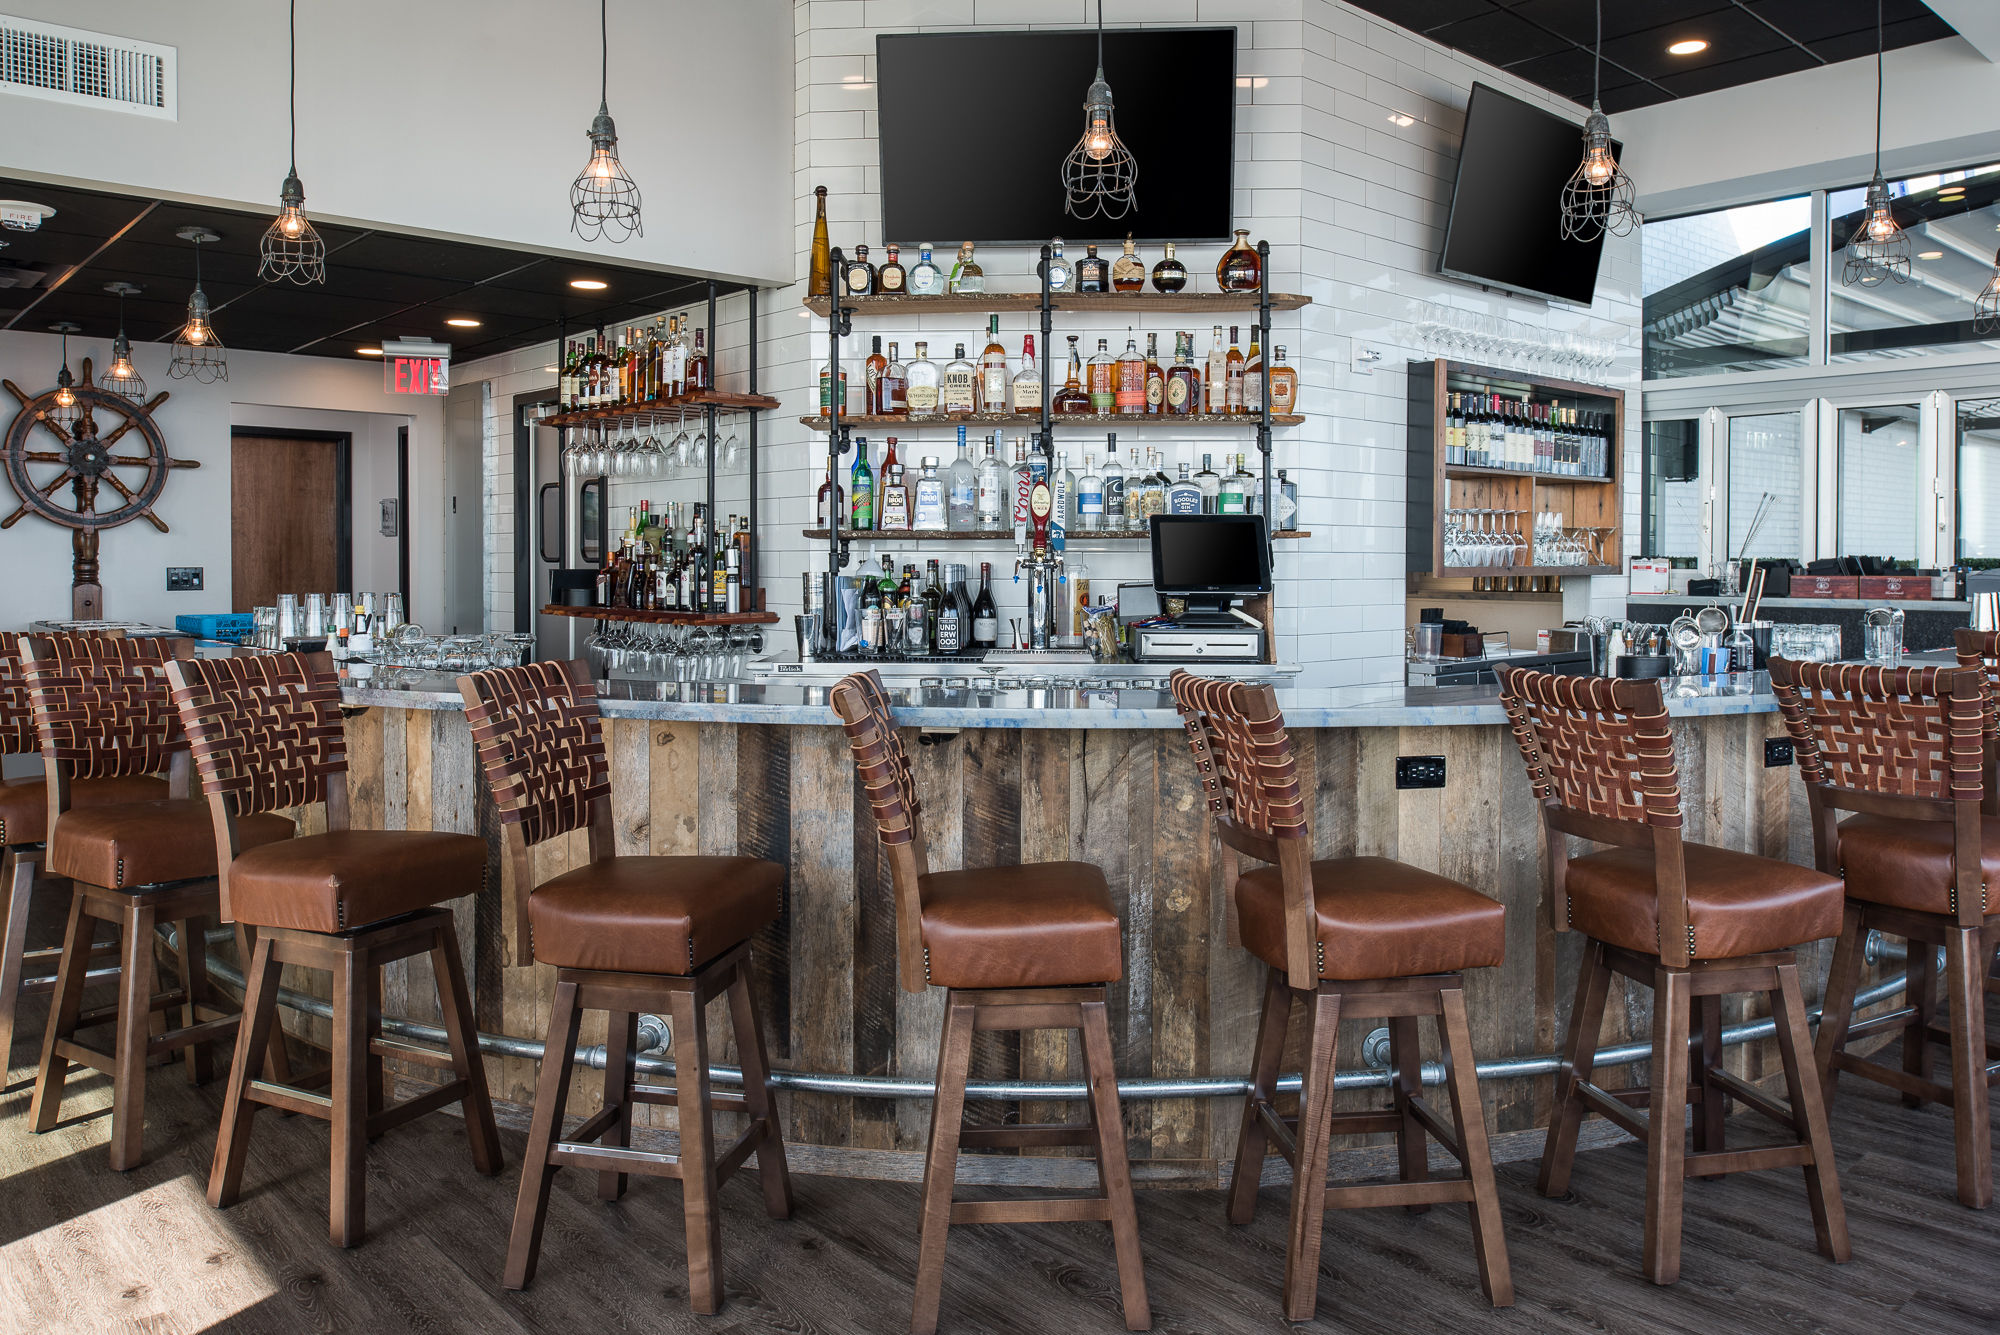 Micamy Design Studio_Interior Design_River and Post_Restaurant_Rooftop_Bar_Industrial_Rustic_Coastal_Riverside_Reclaimed Wood_Blog Style_Styling Accessories_St Johns River_Cocktails (2).jpg